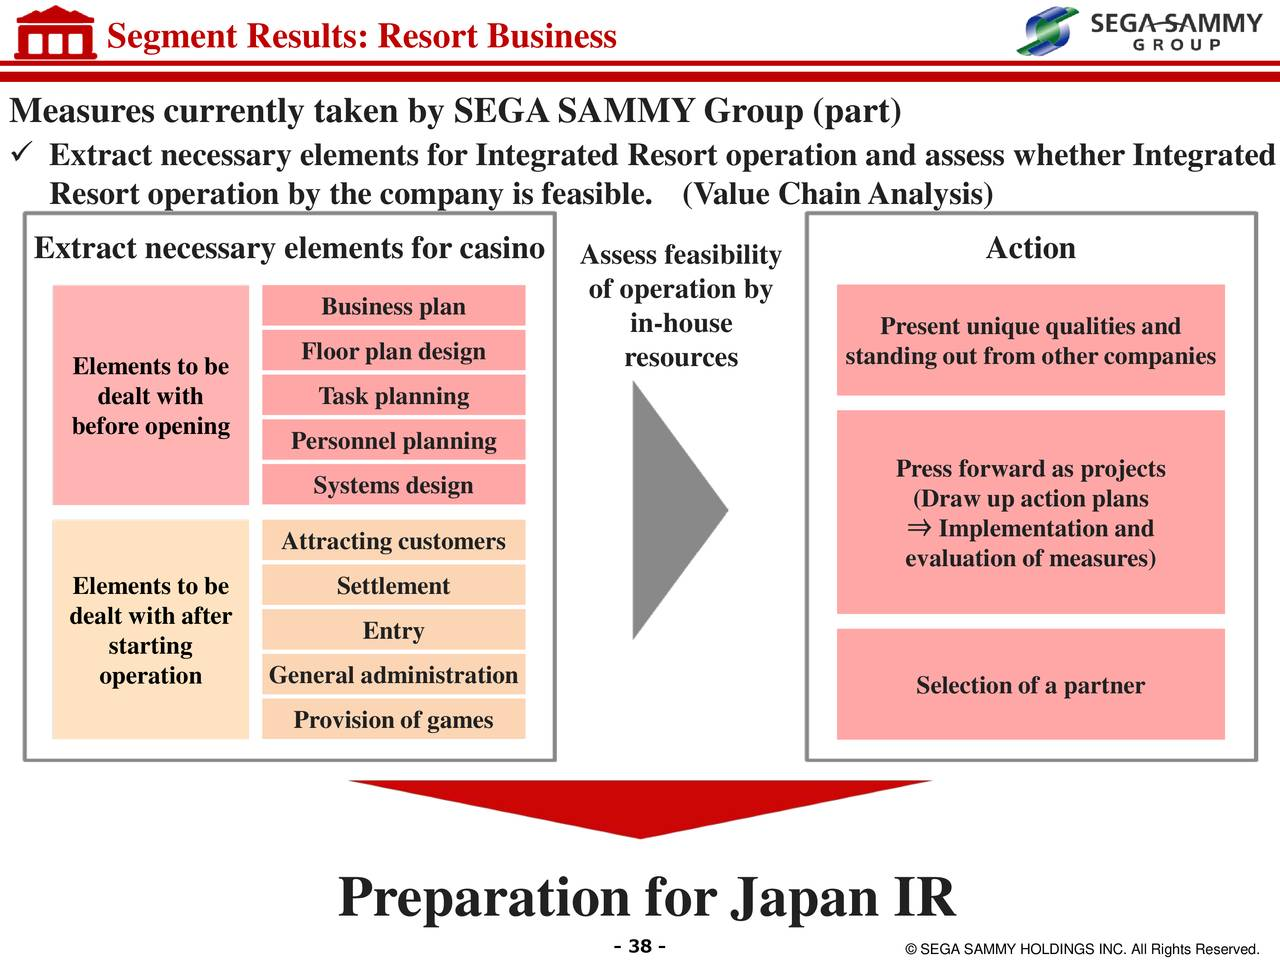 sega sammy business analysis The company's resort business segment develops and operates hotels, theme parks, and integrated resorts sega sammy holdings inc was founded in 2004 and is based in tokyo, japan corporate governance.